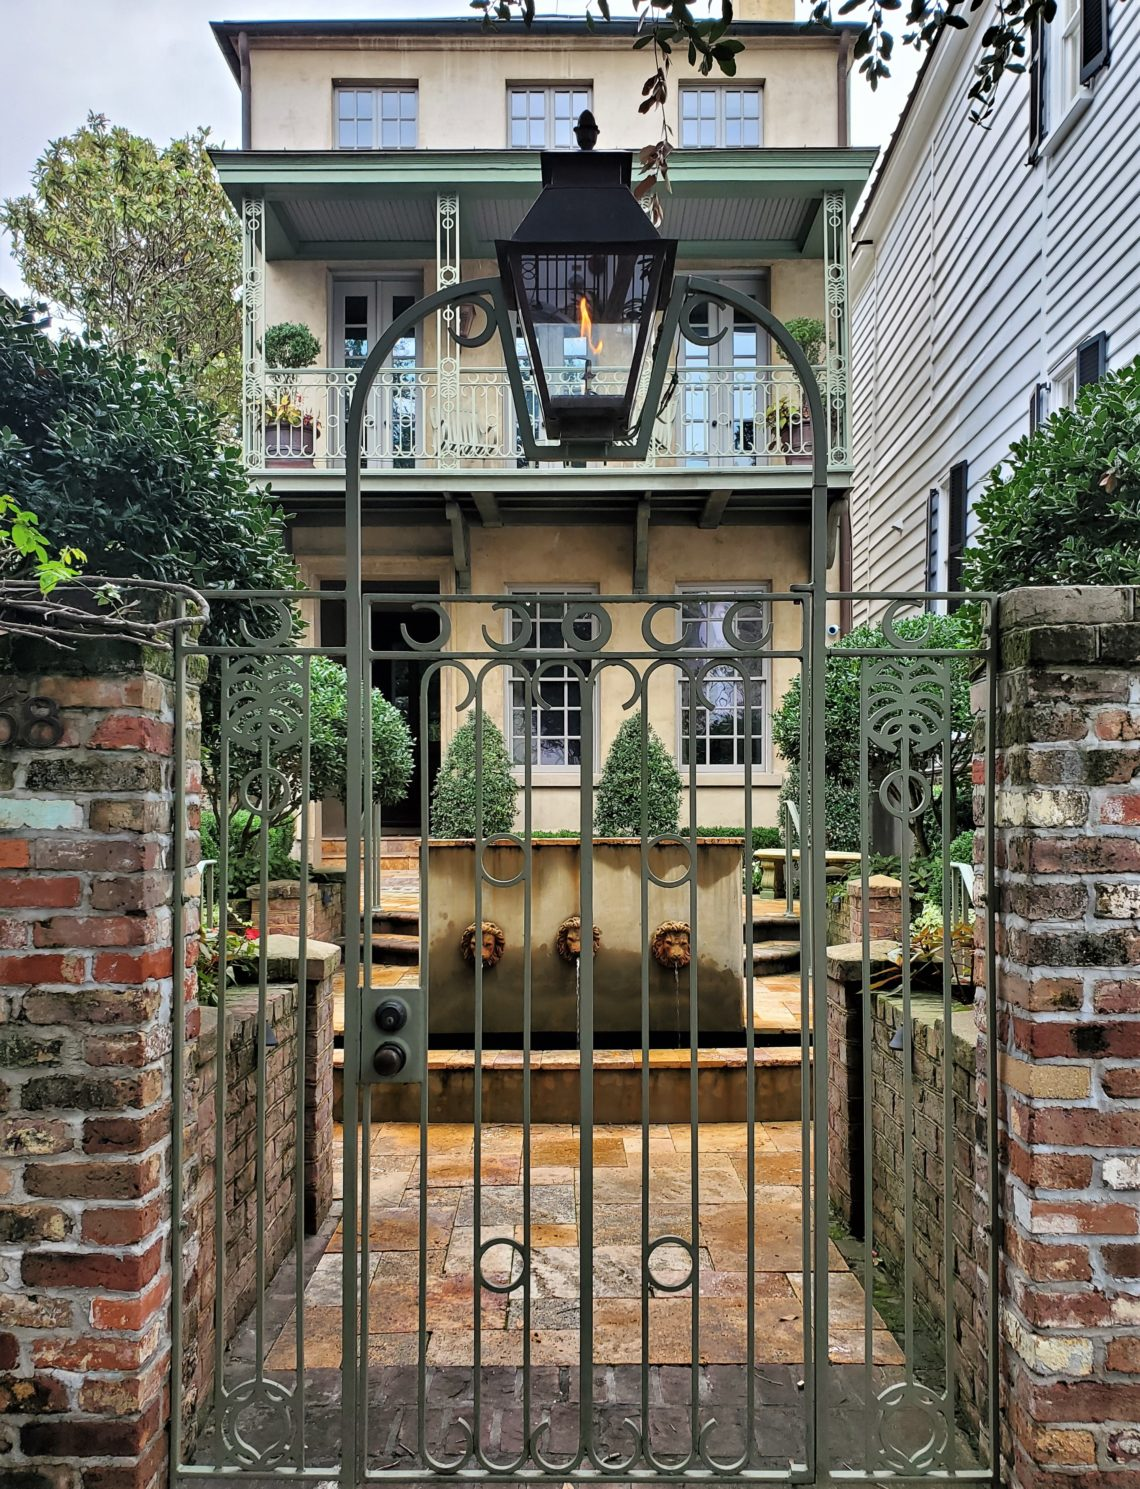 This interesting gate, courtyard and house combination is just up Church Street from the First Baptist Church -- which was first organized in 1682 in Kittery, Maine!